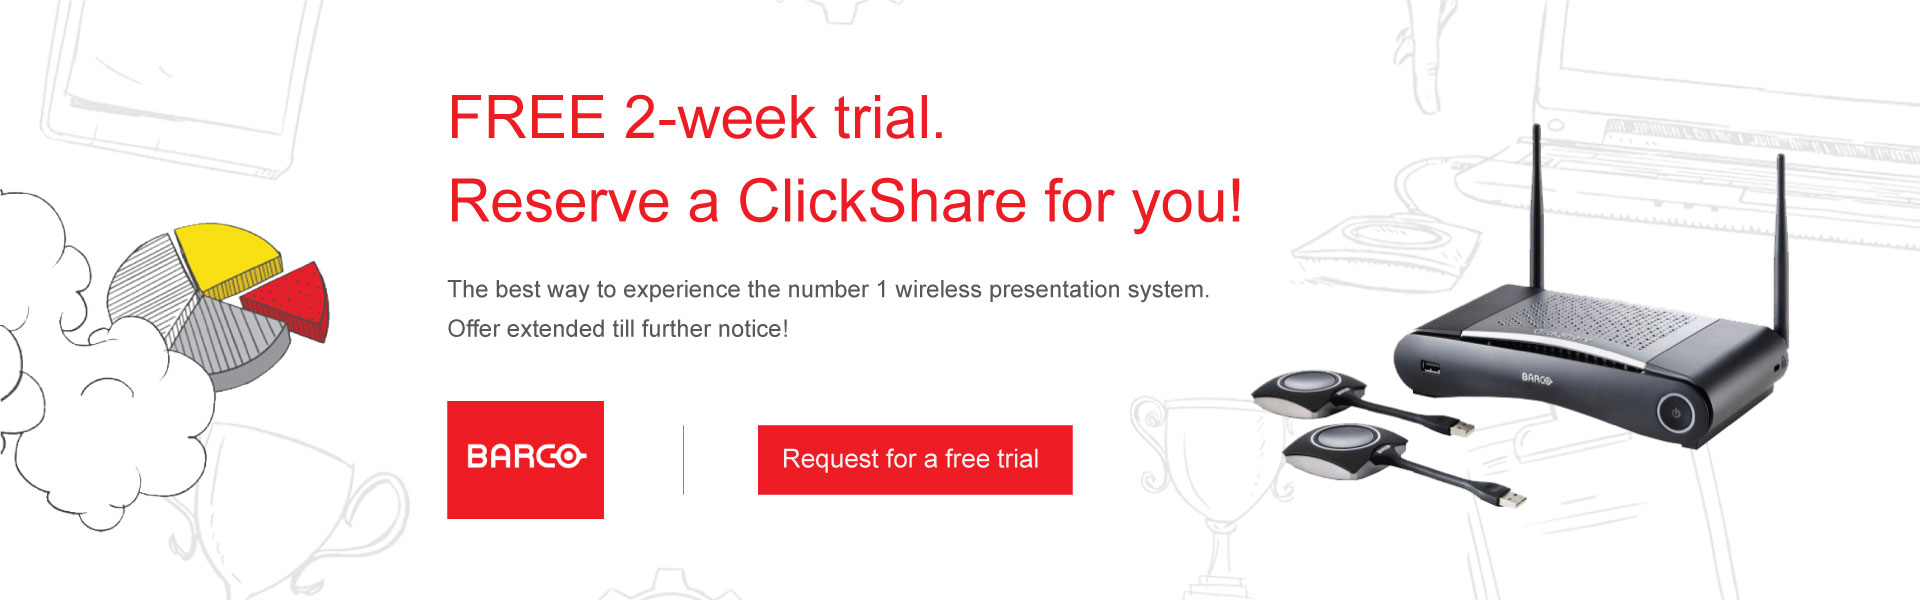 Barco Clickshare-2-weeks-trial